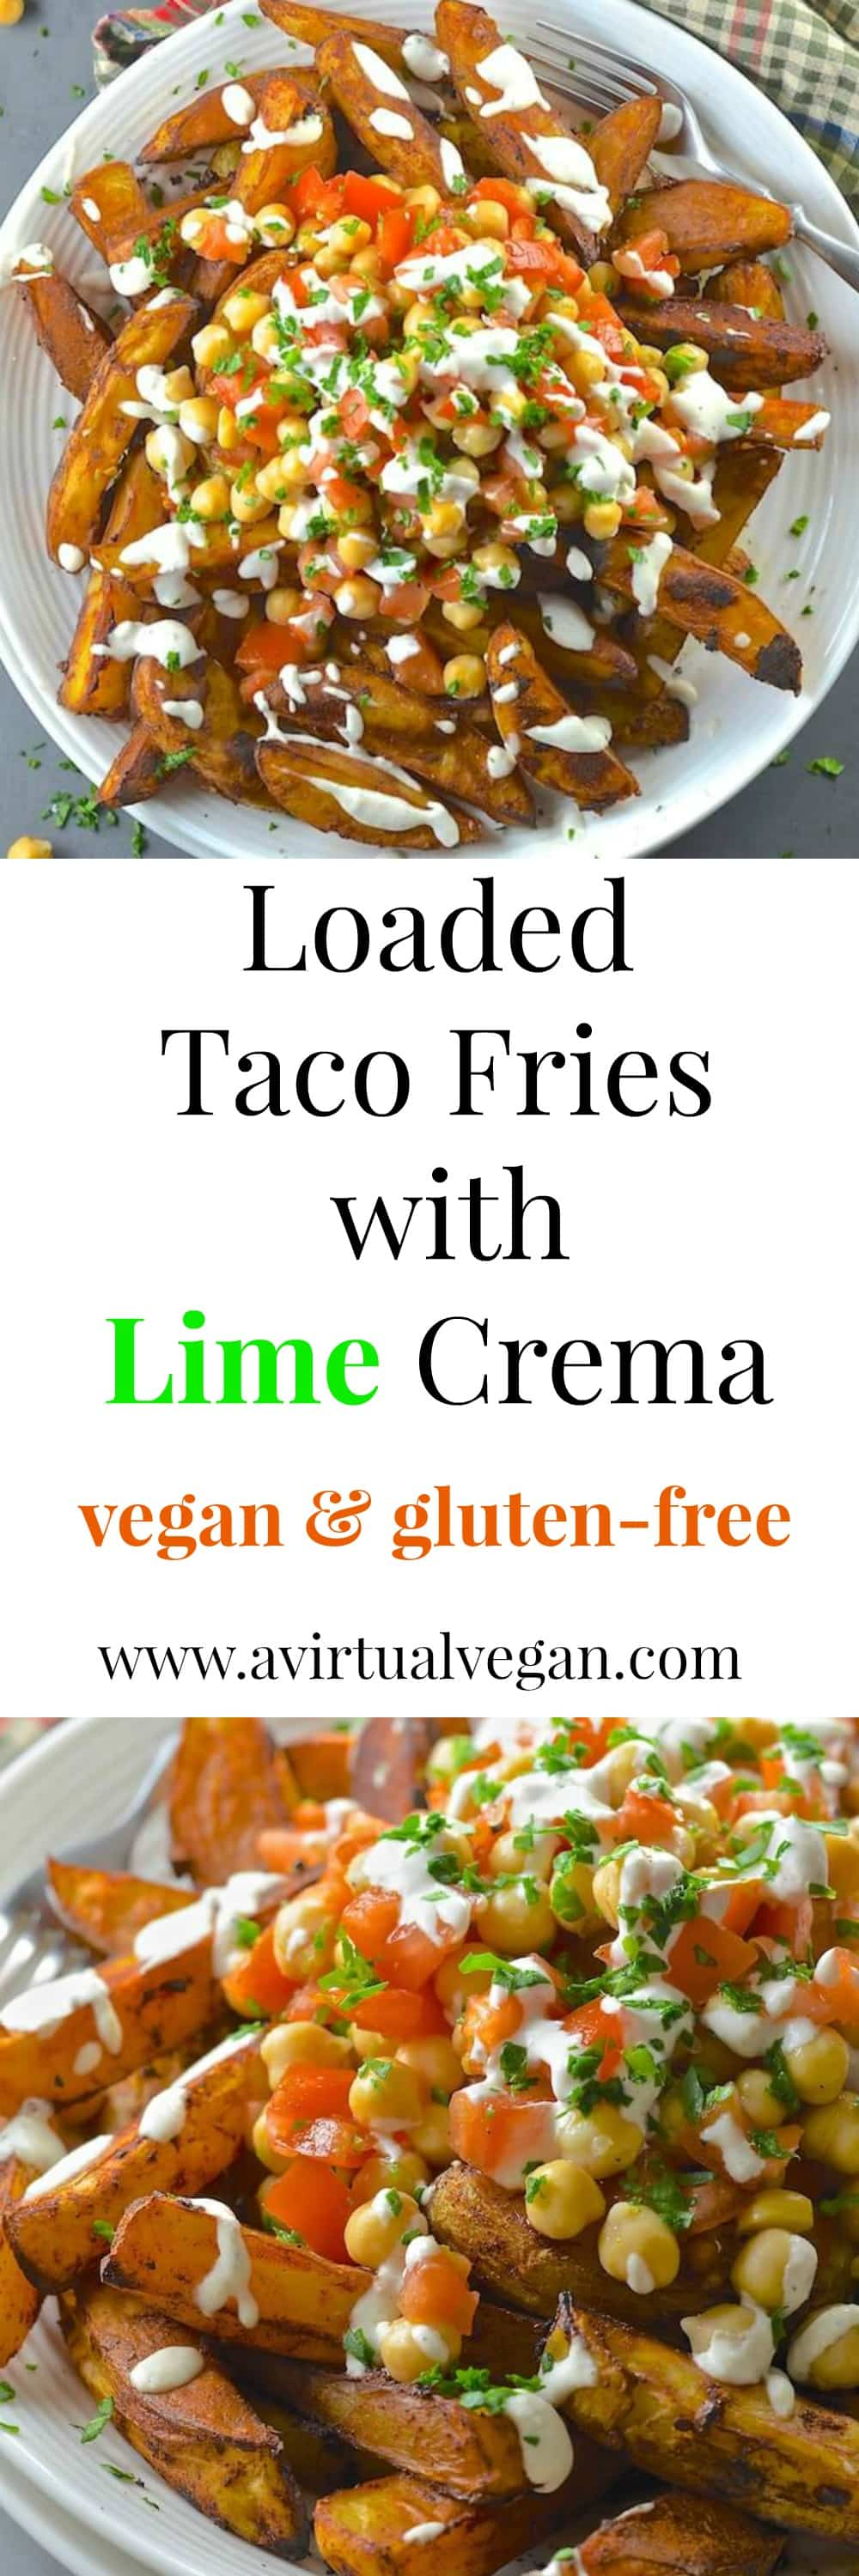 Loaded Taco Fries with a generous drizzle of Lime Crema. Healthy, oil-free & delicious.